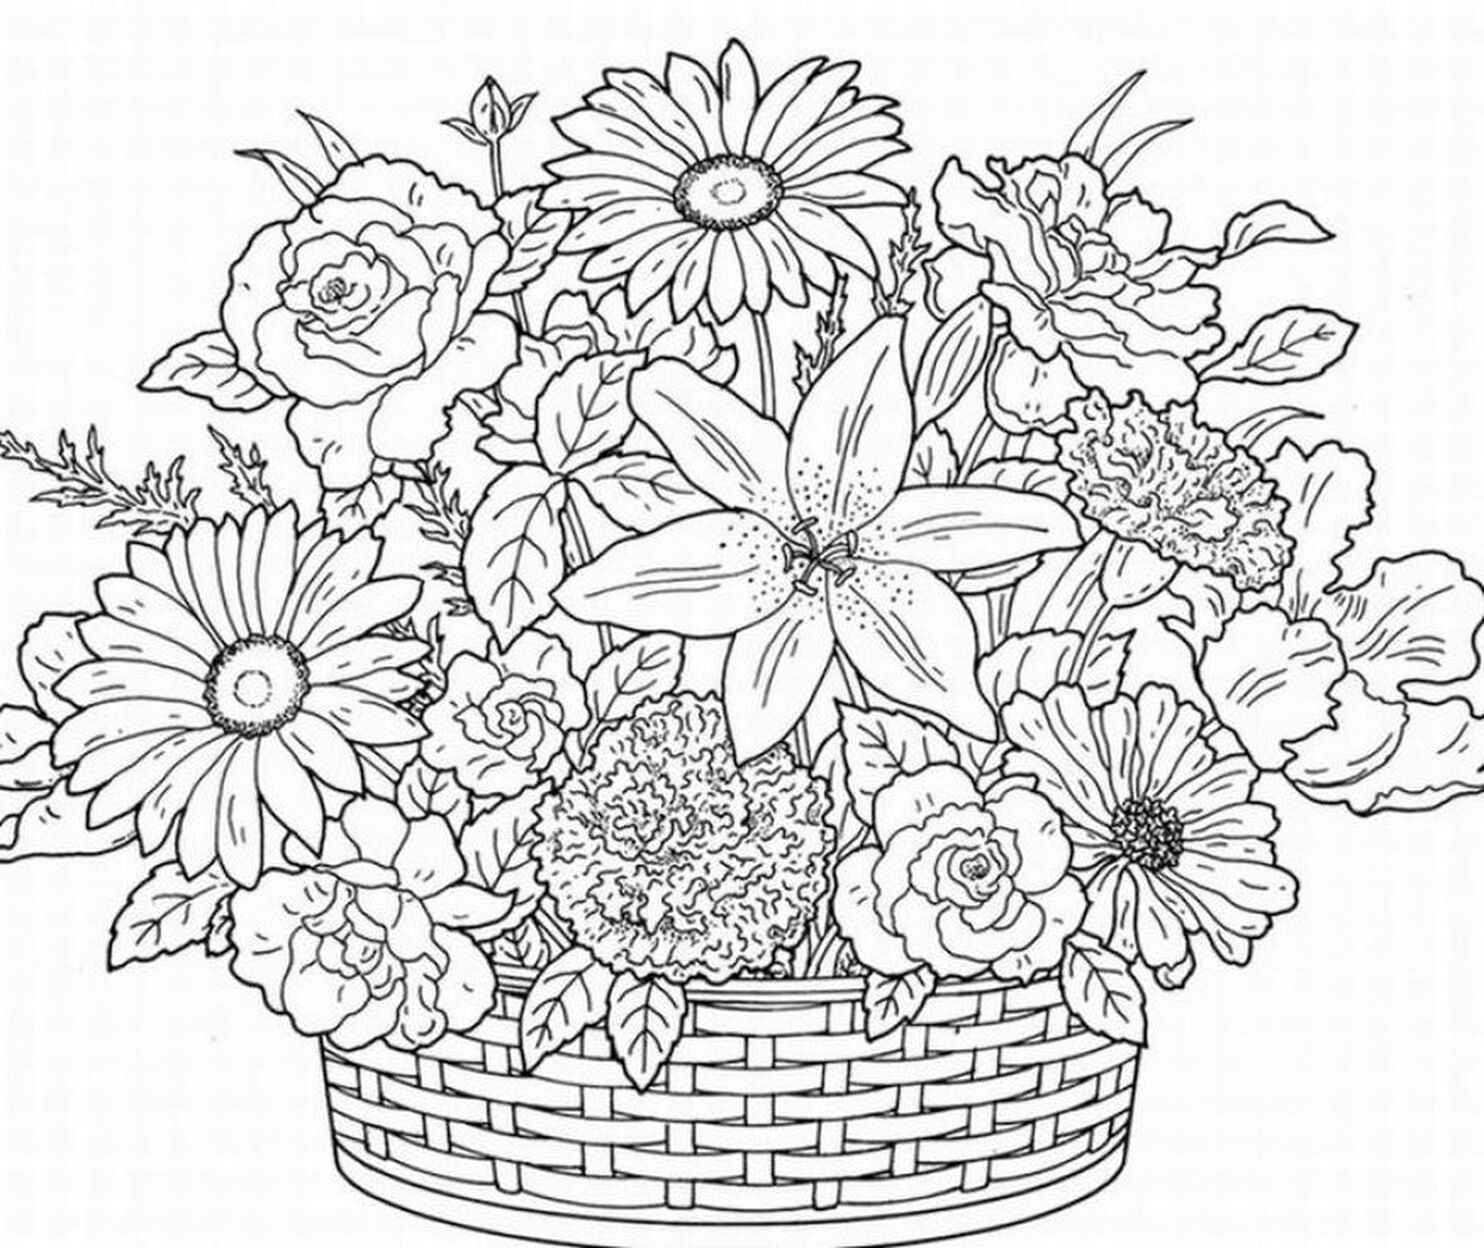 Basket With Flowers To Color